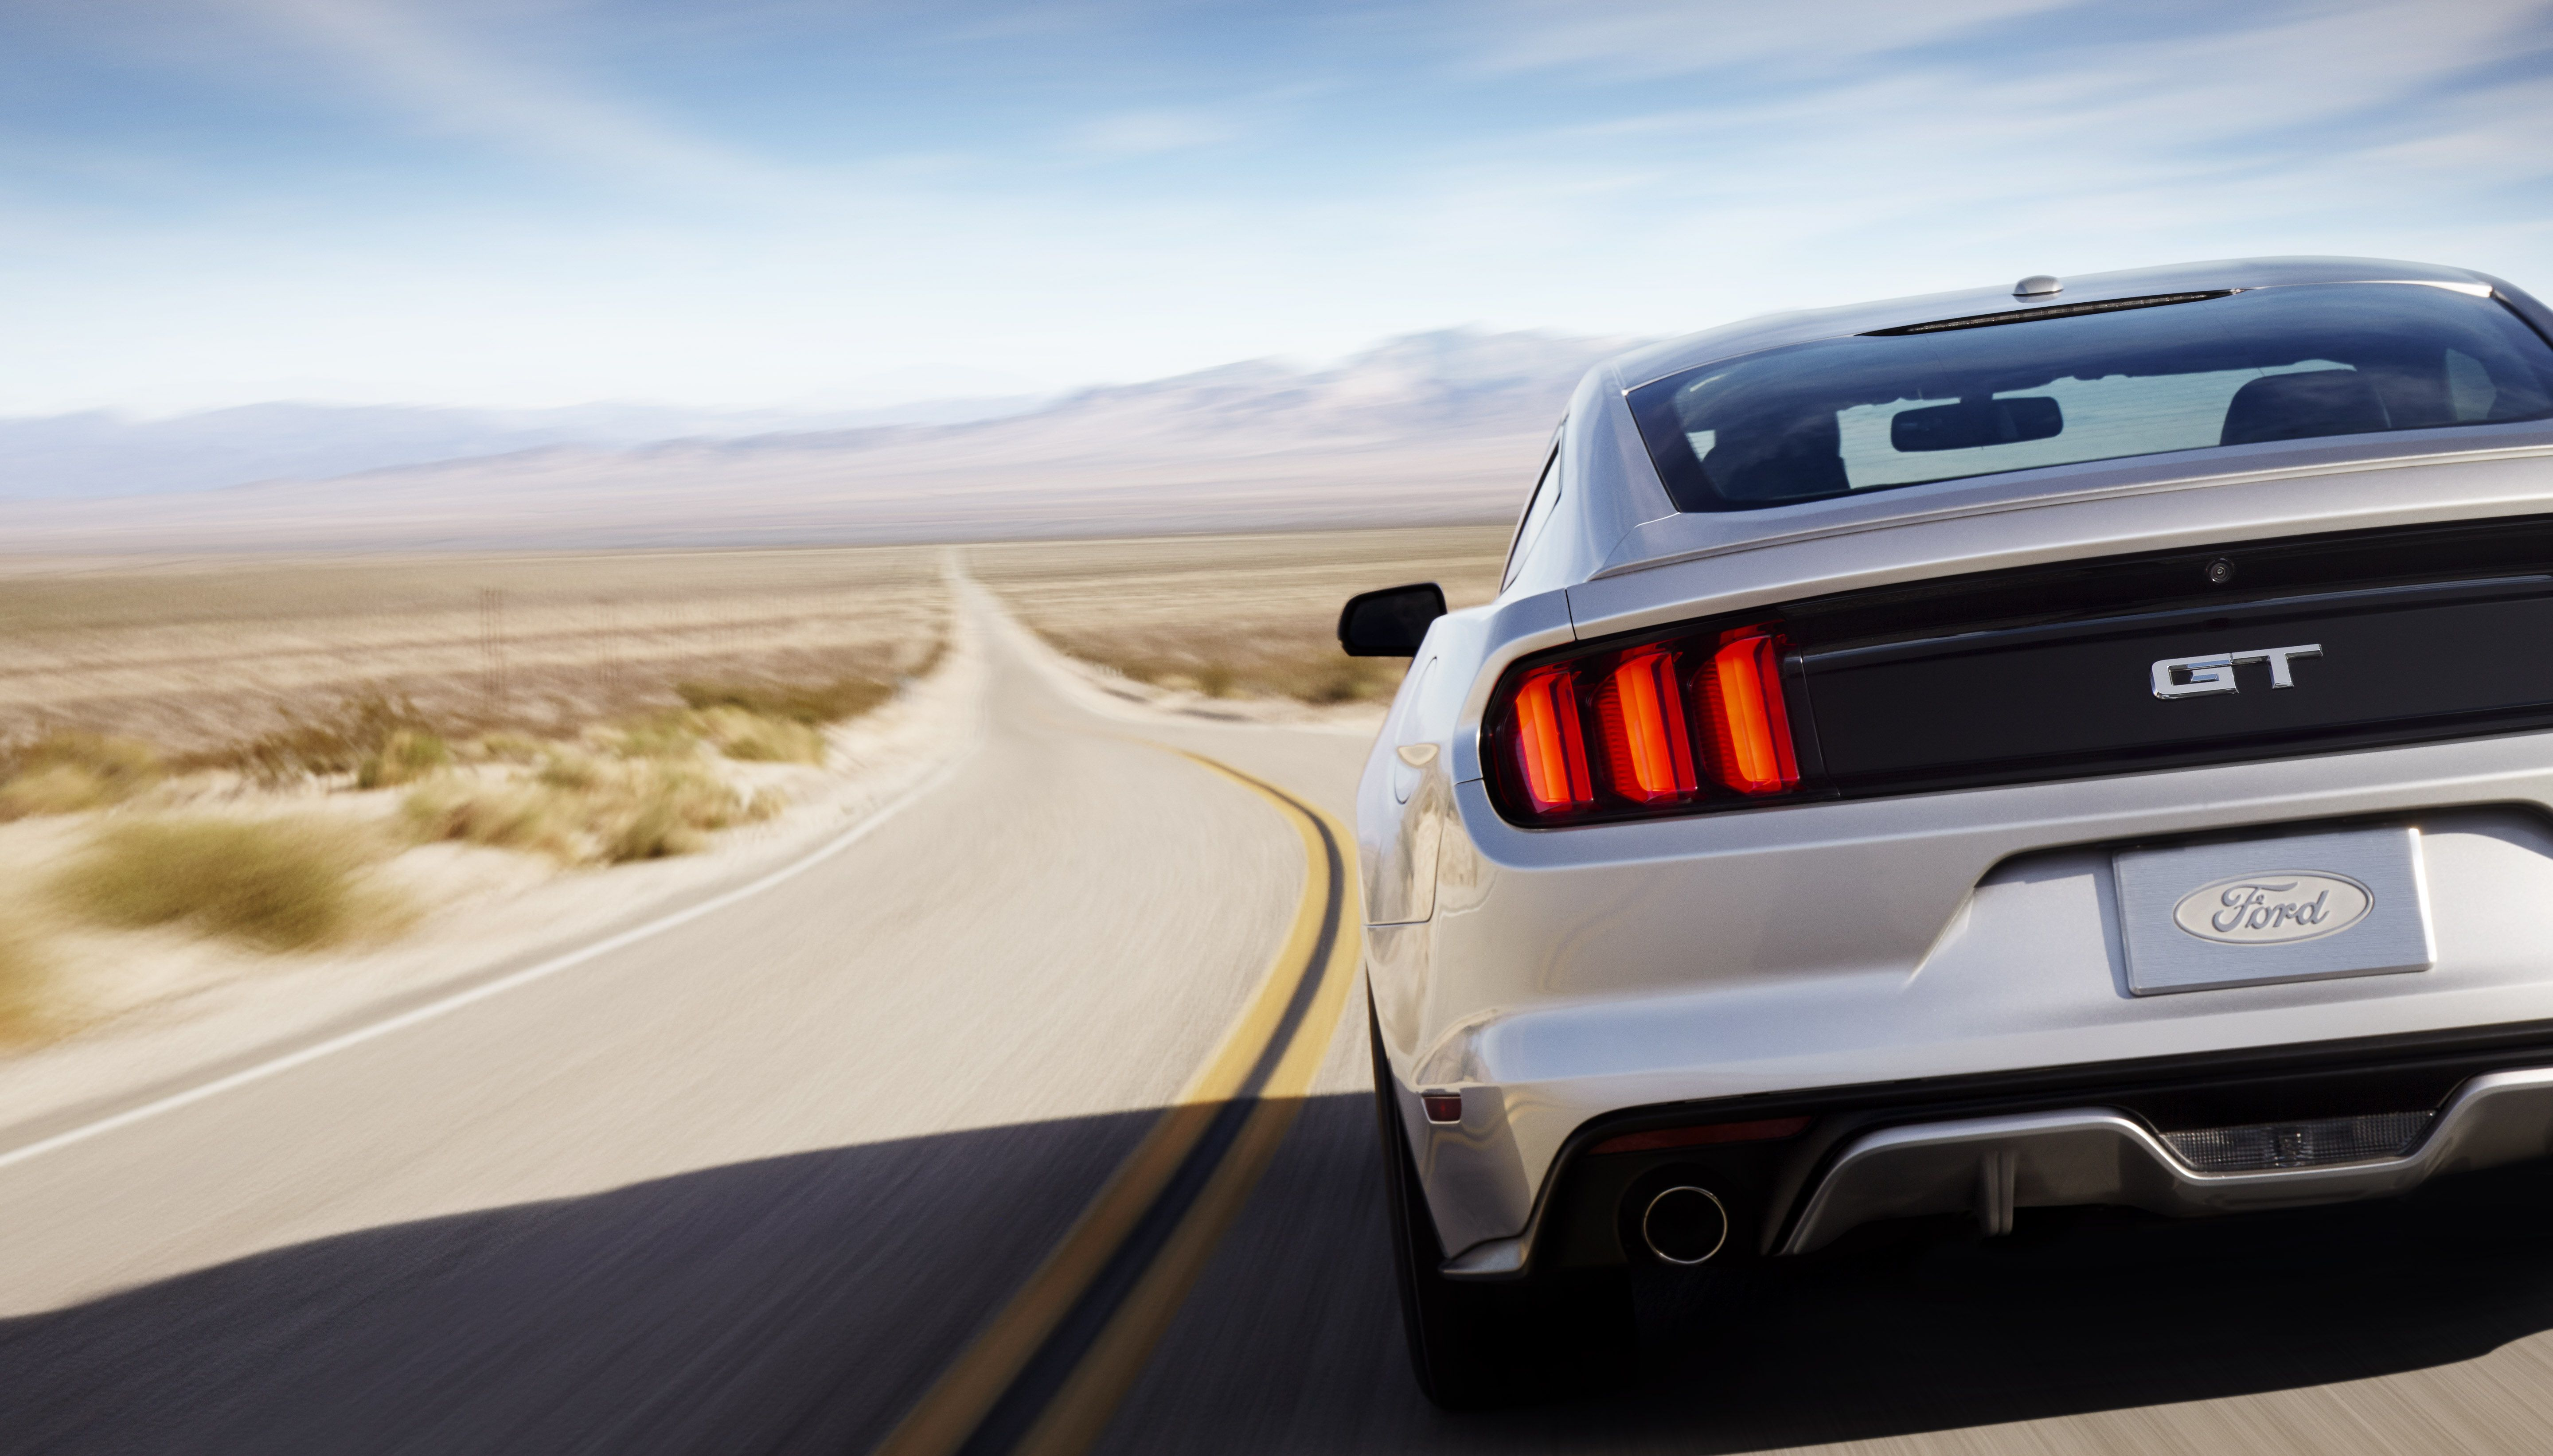 Ford Mustang Wallpaper High Quality Resolution With Images